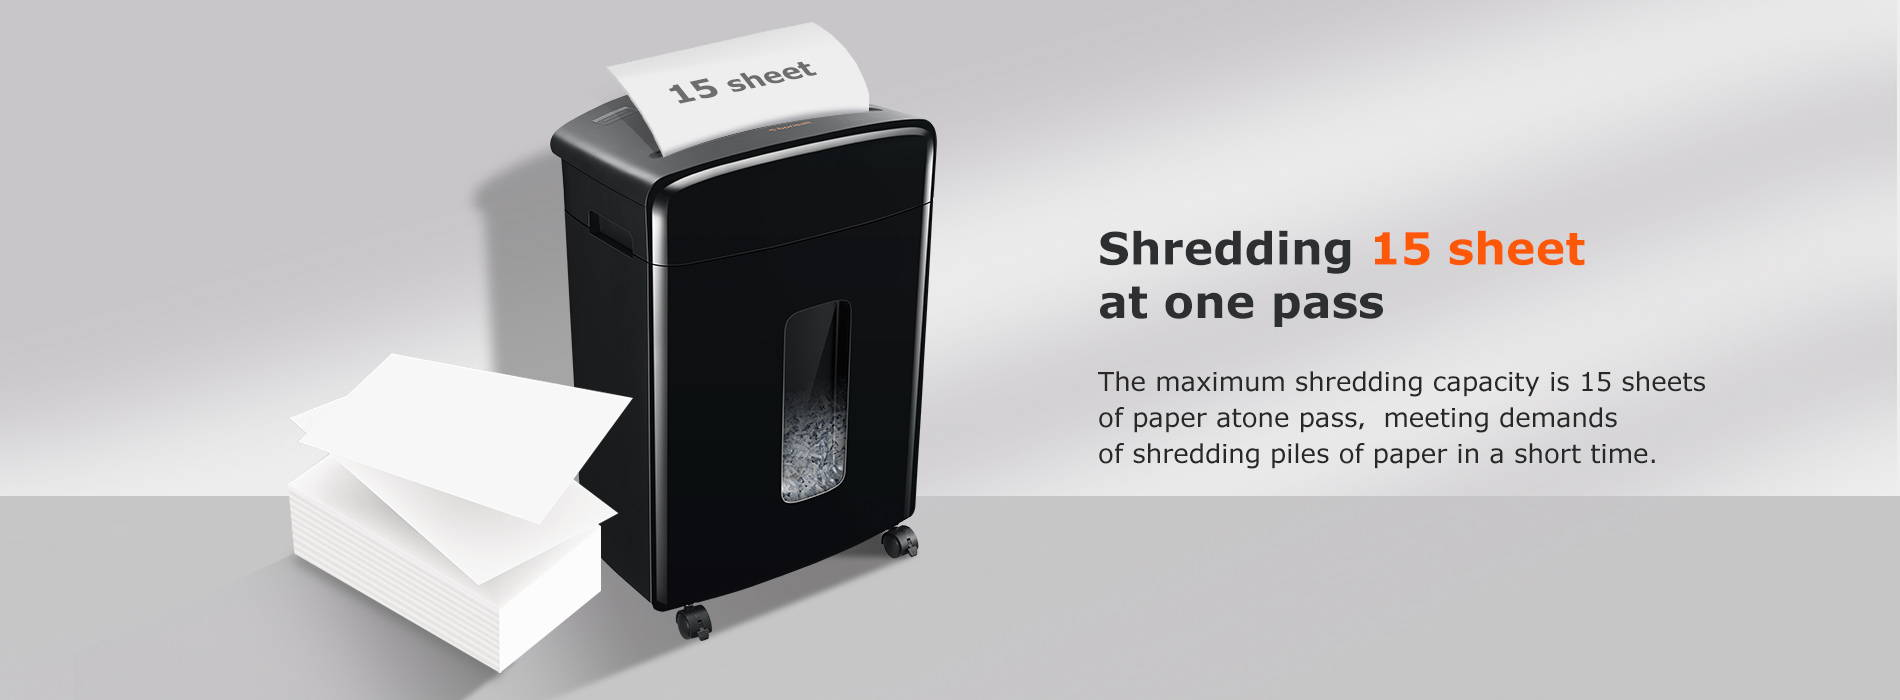 Shredding 15 sheet at one pass The maximum shredding capacity is 15 sheets of paper atone pass,meeting demands of shredding piles of paper in a short time.